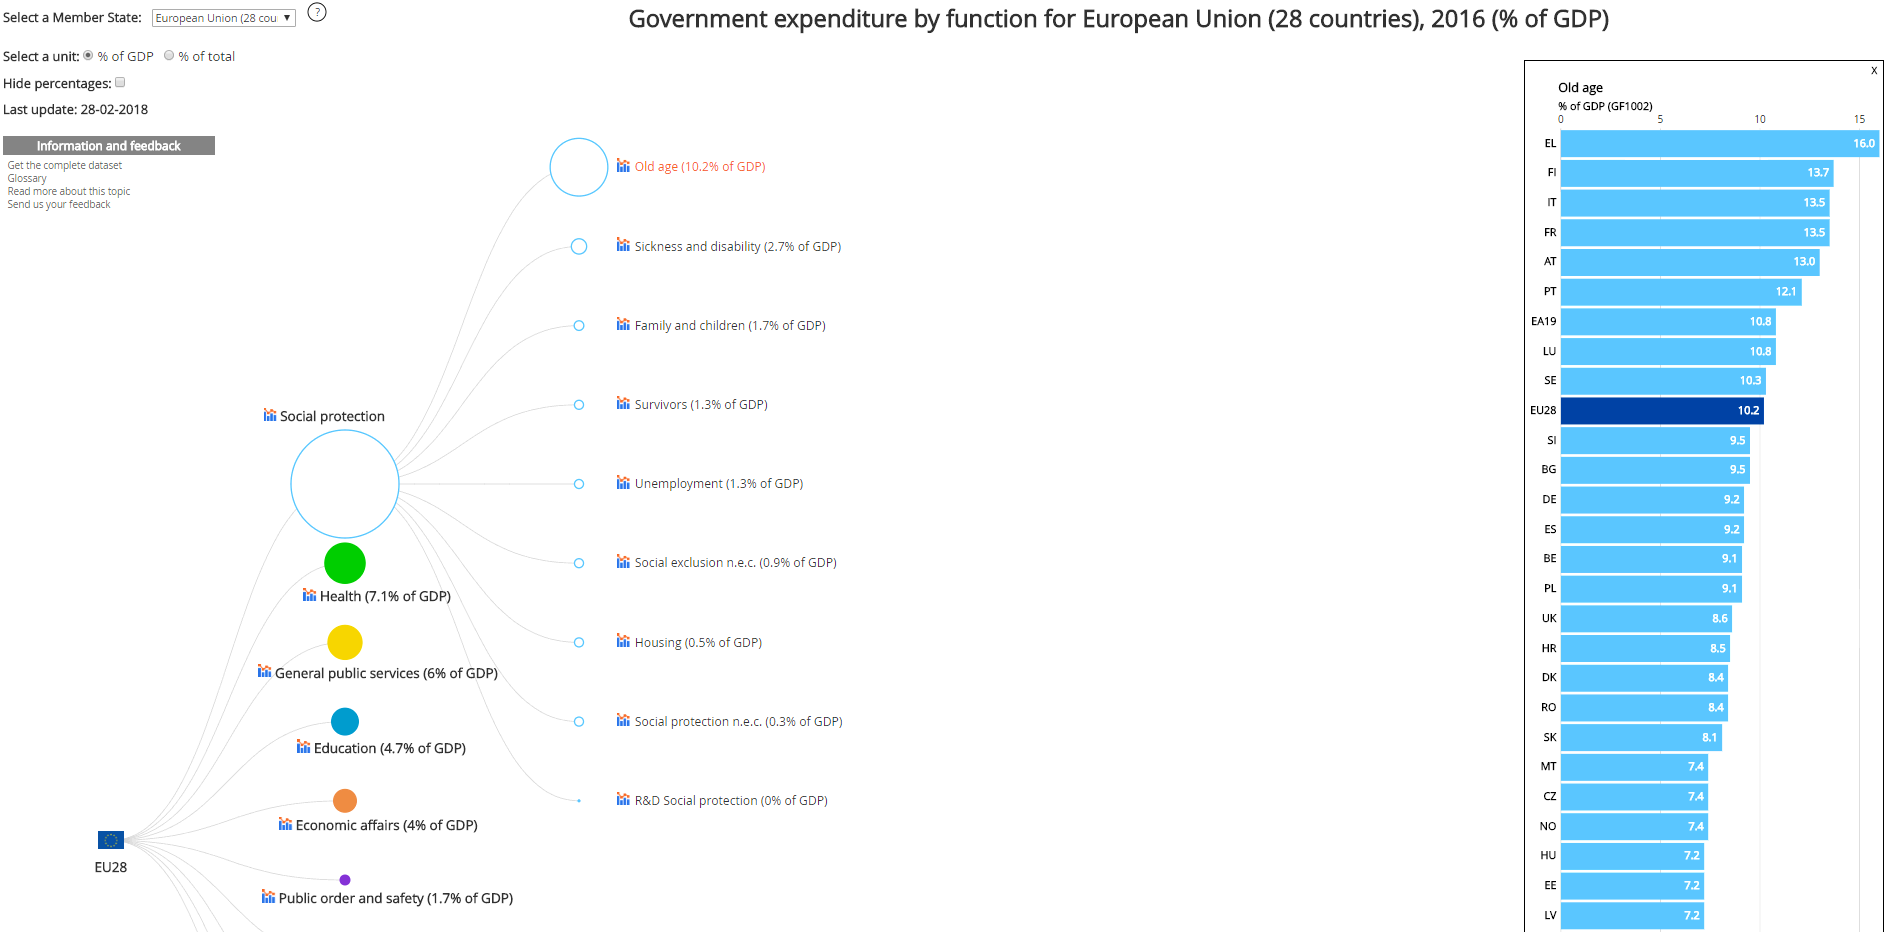 Visualisation: Government expenditure by function, 2016